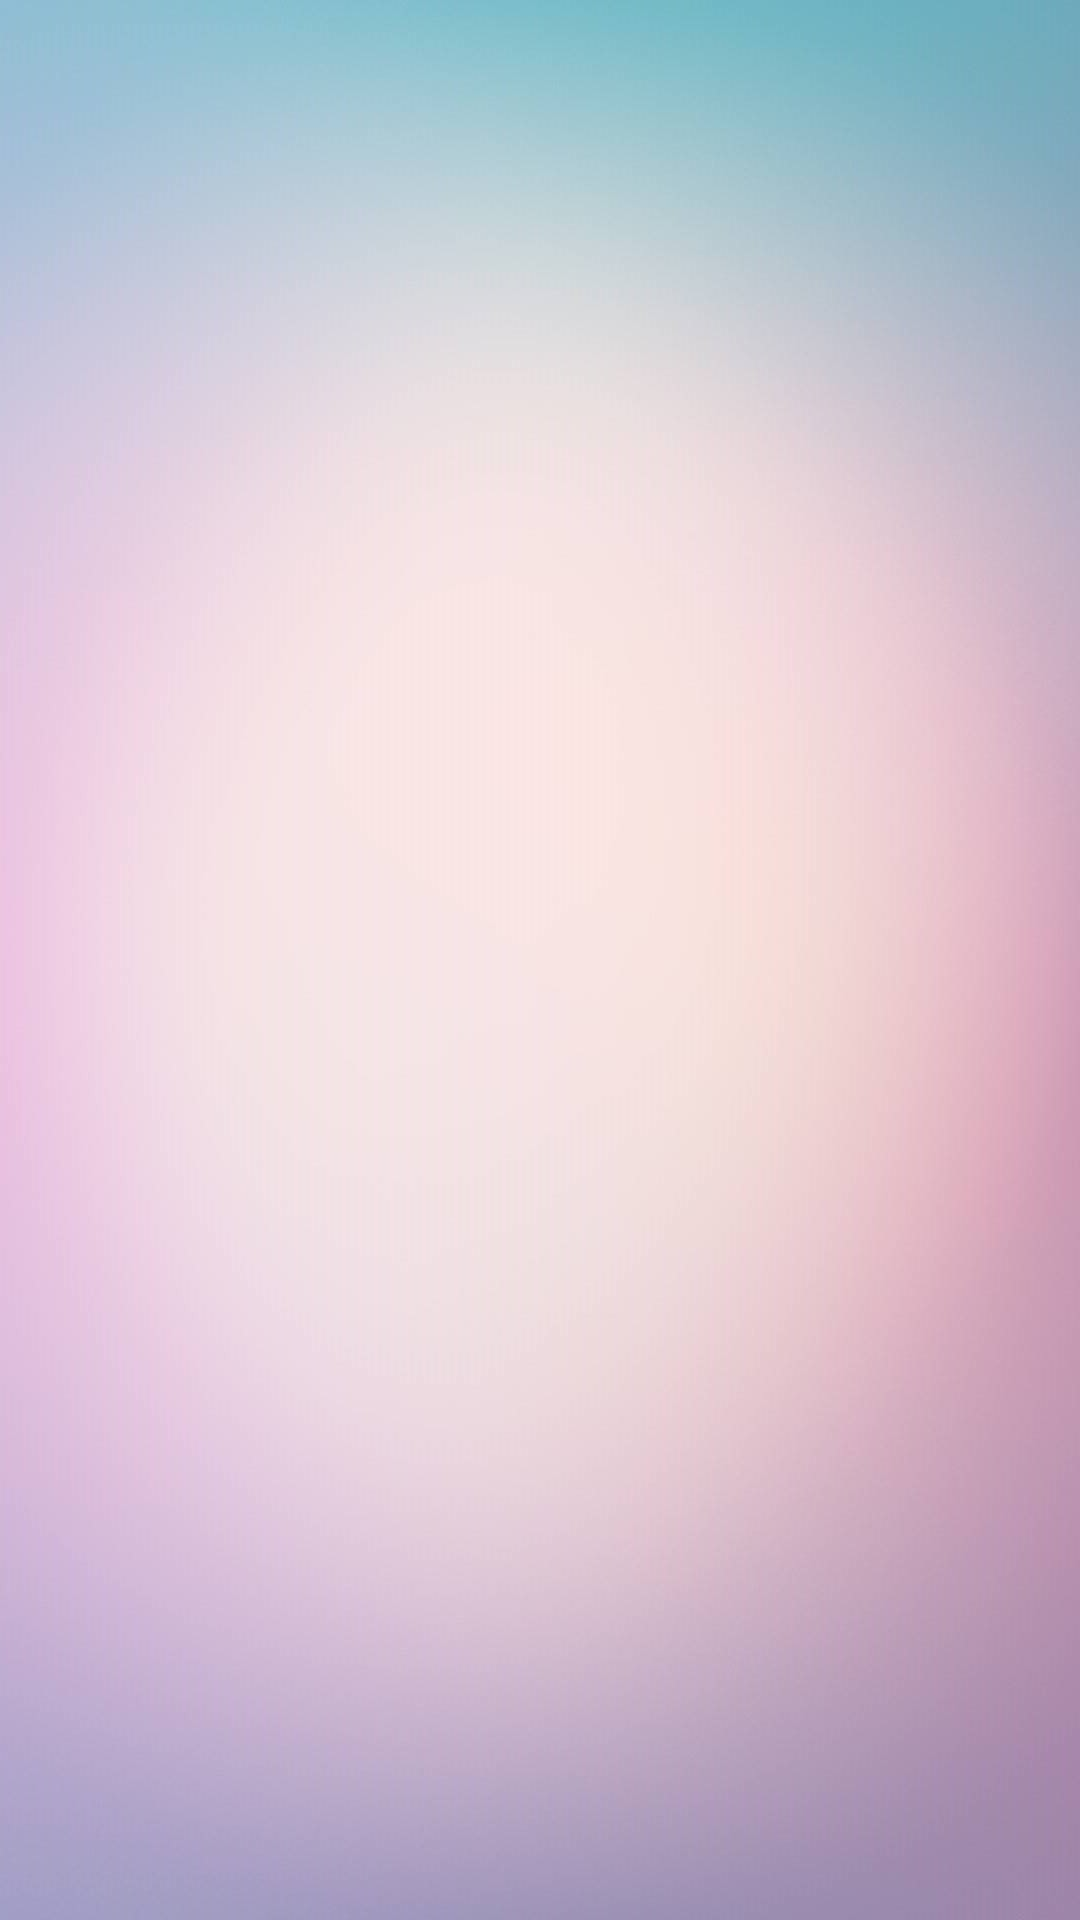 Calming-Blurred-Background-Calming-blurred-lights-and-gradients-for-iPhone-mobile-wallpaper-wpc5803156